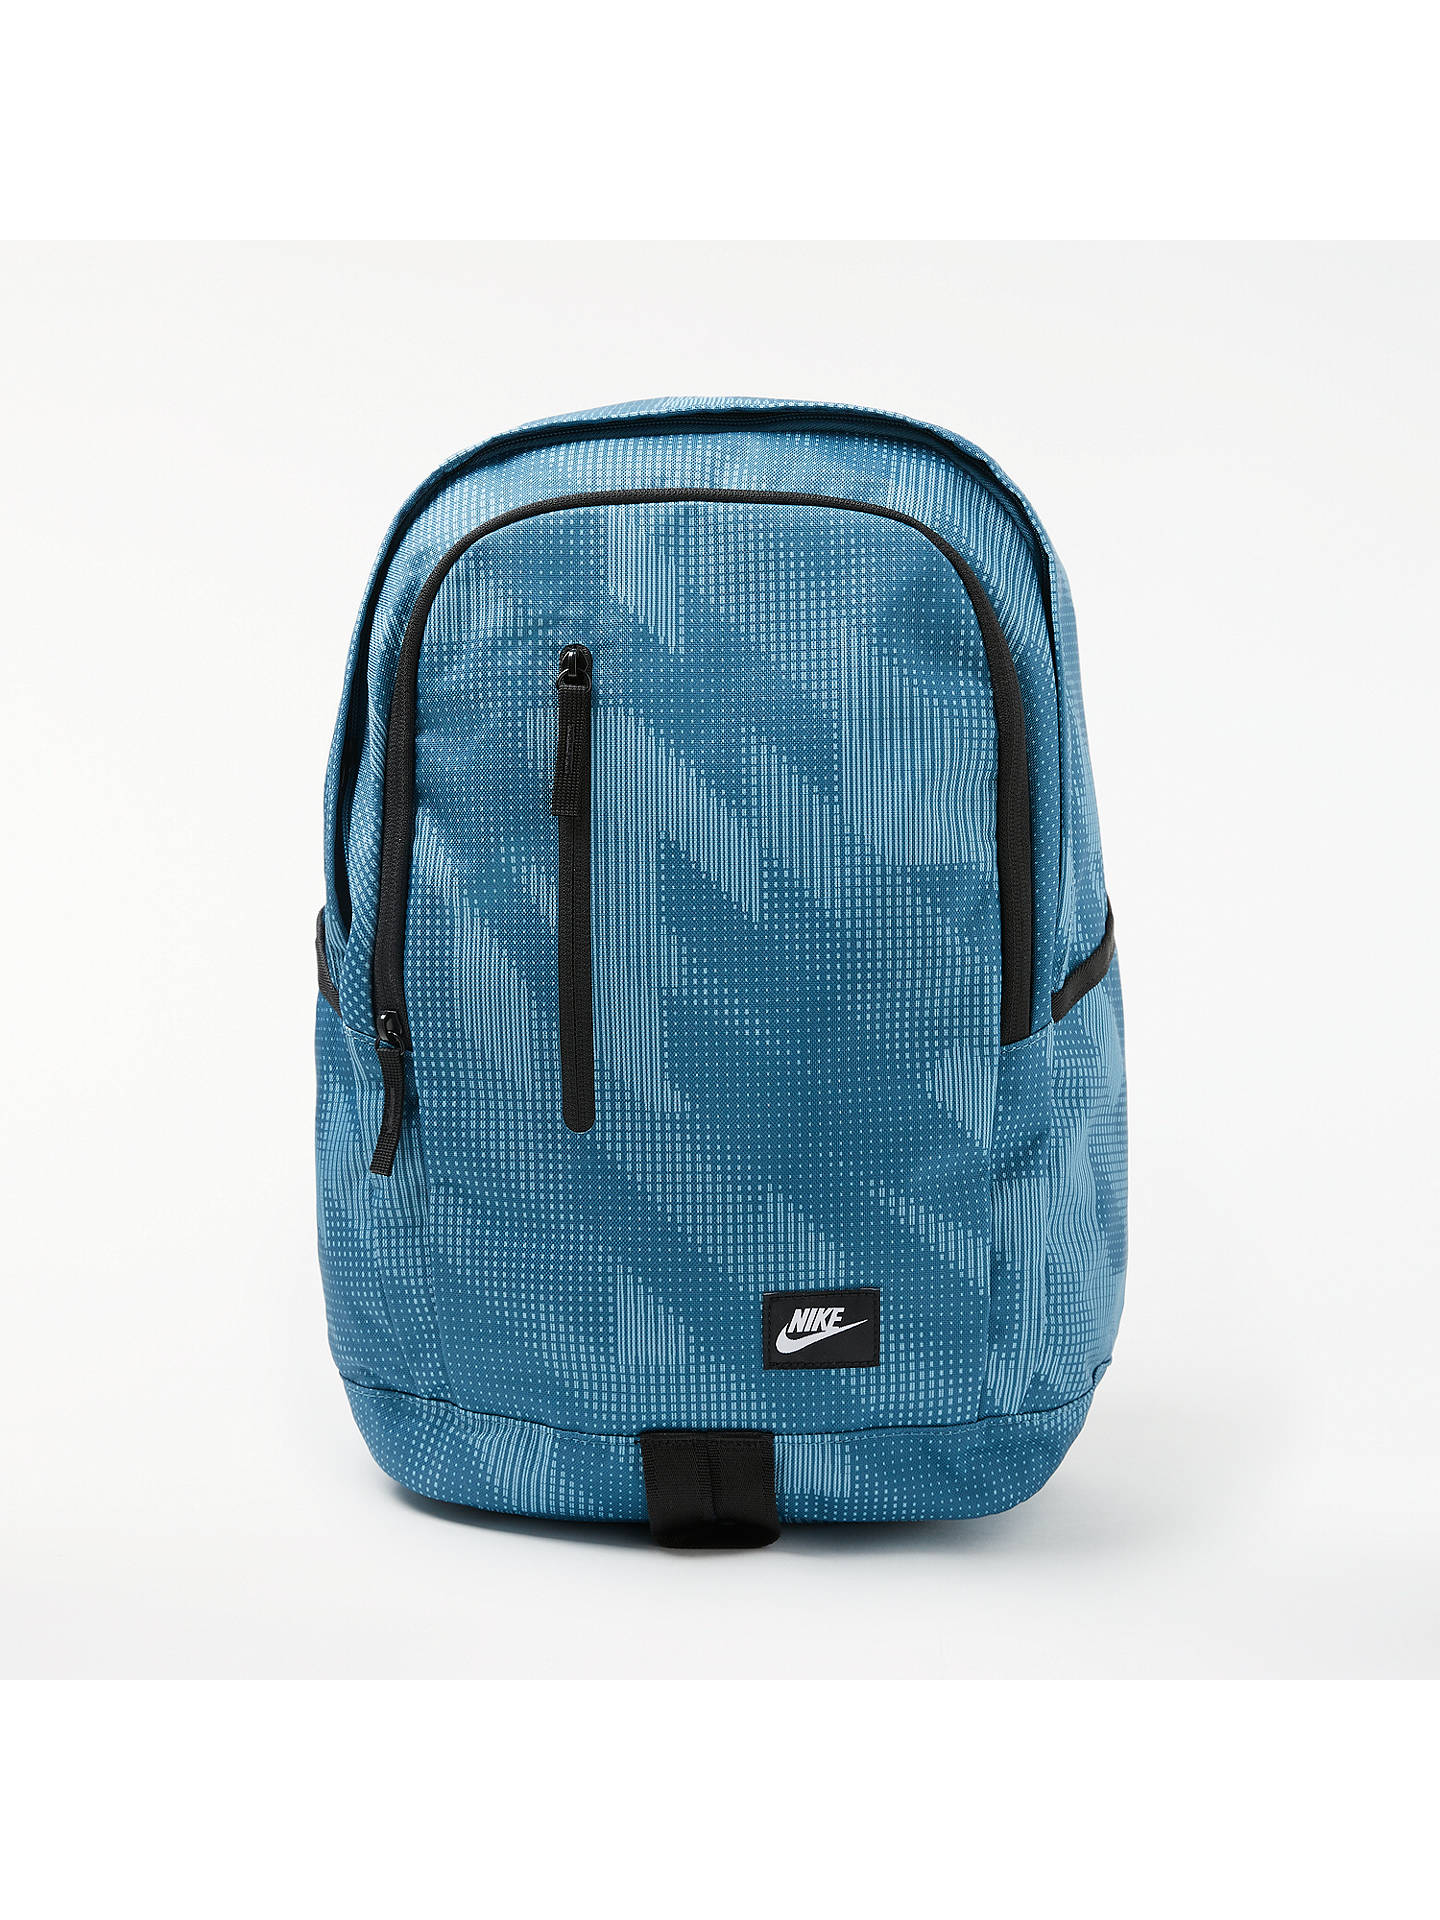 Nike All Access Soleday Backpack, Blue Black at John Lewis   Partners 24c9d348aa